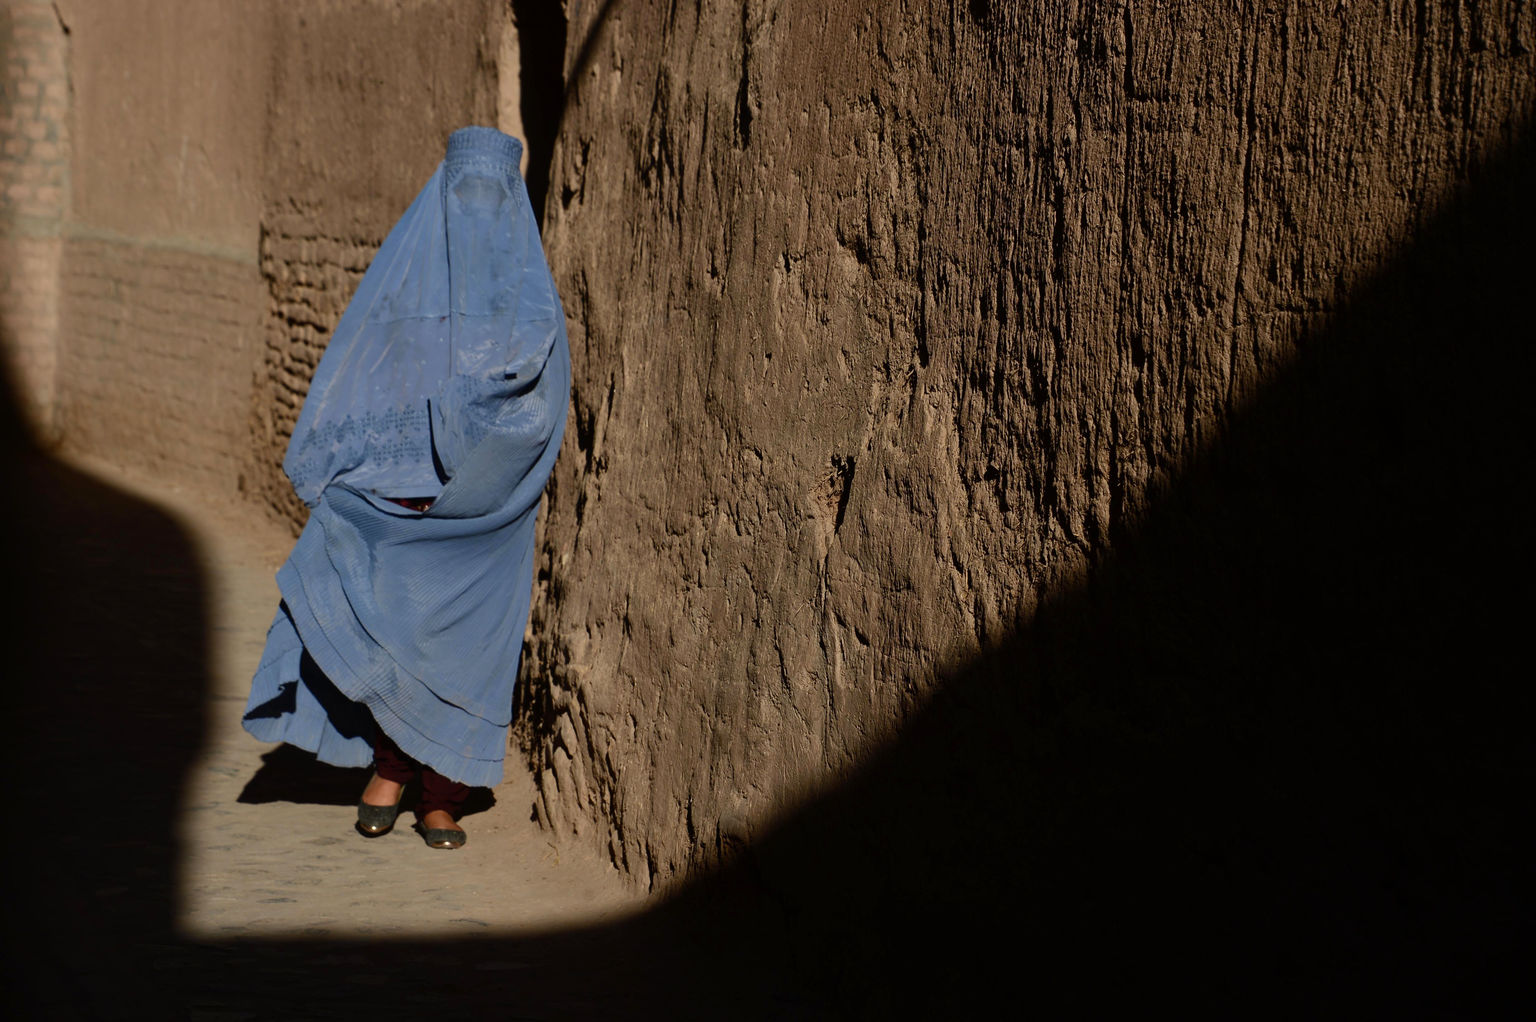 Woman wearing burqa in Afghanistan - Morocco Bans the Burqa - mpc journal